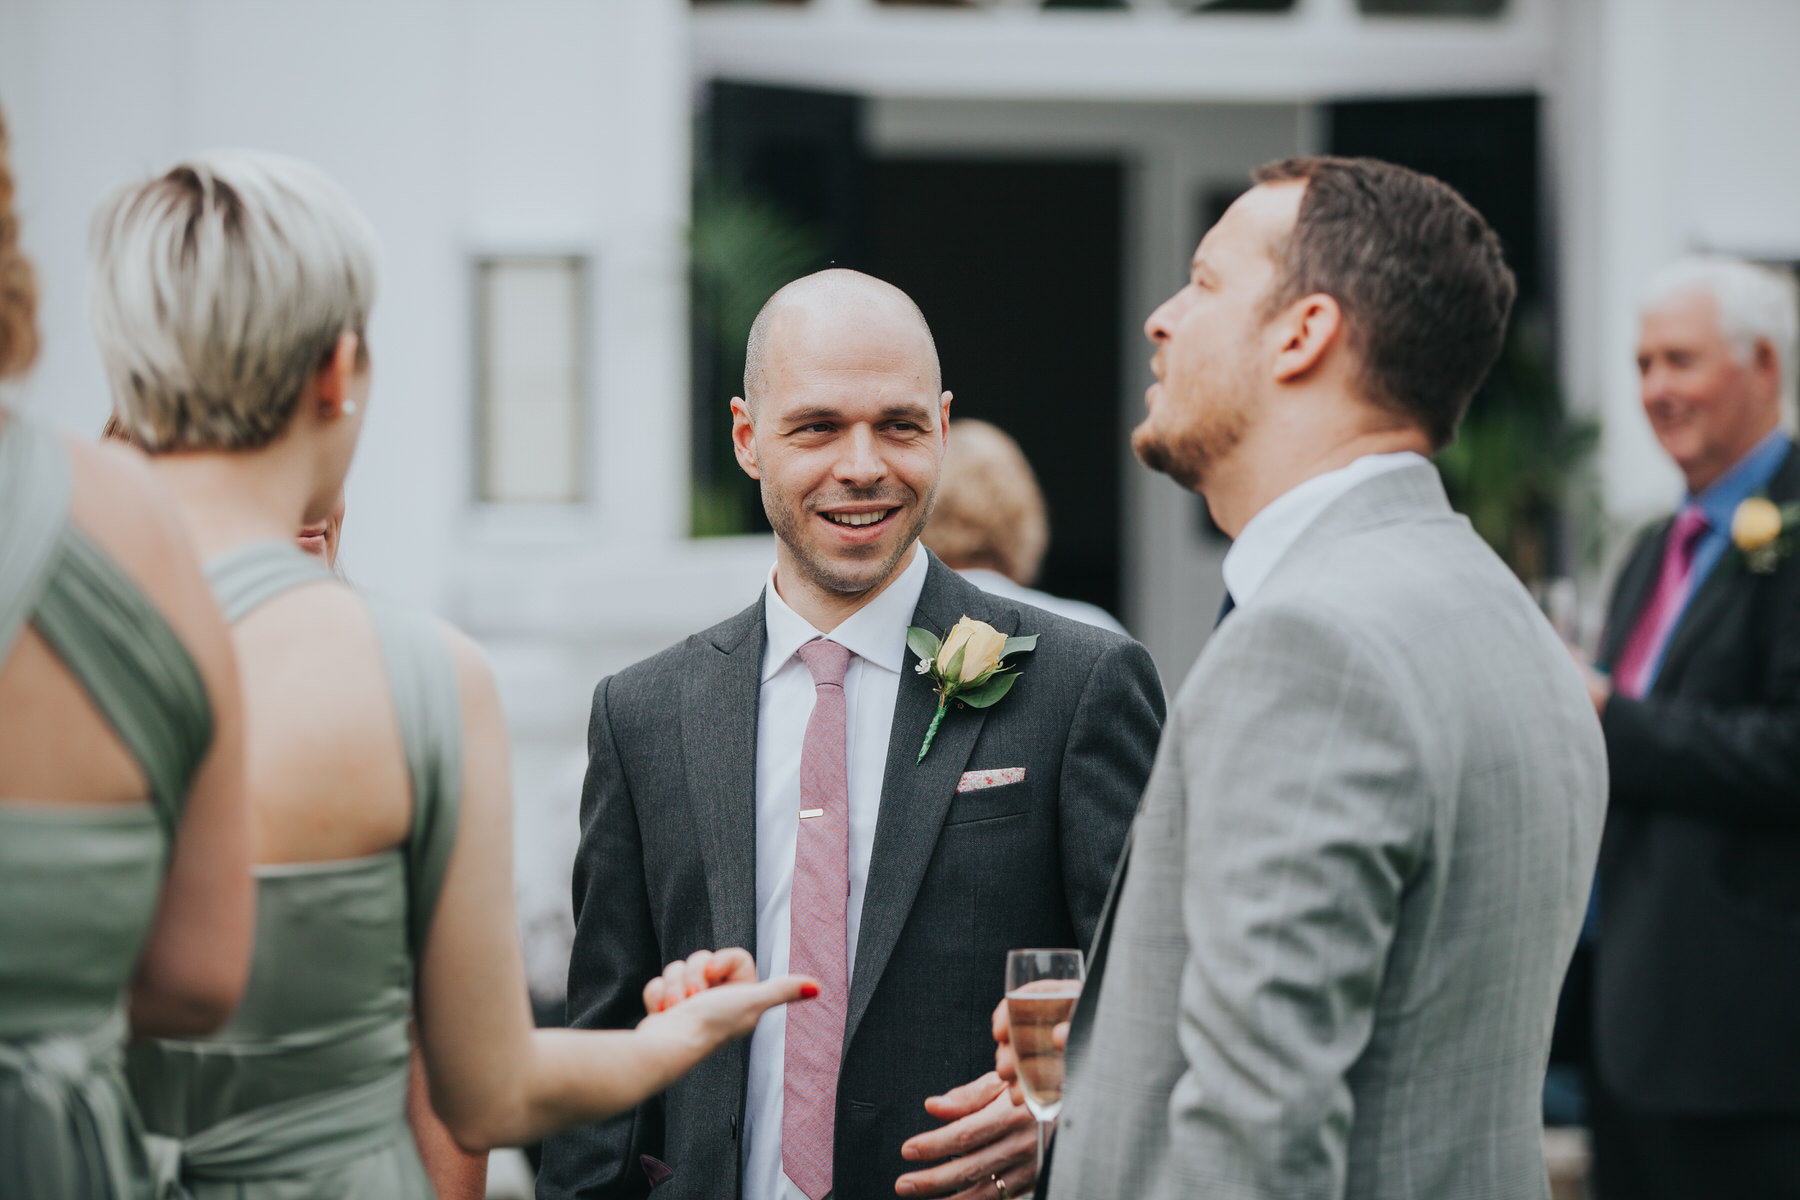 238 groom mingling with wedding guests reportage.jpg